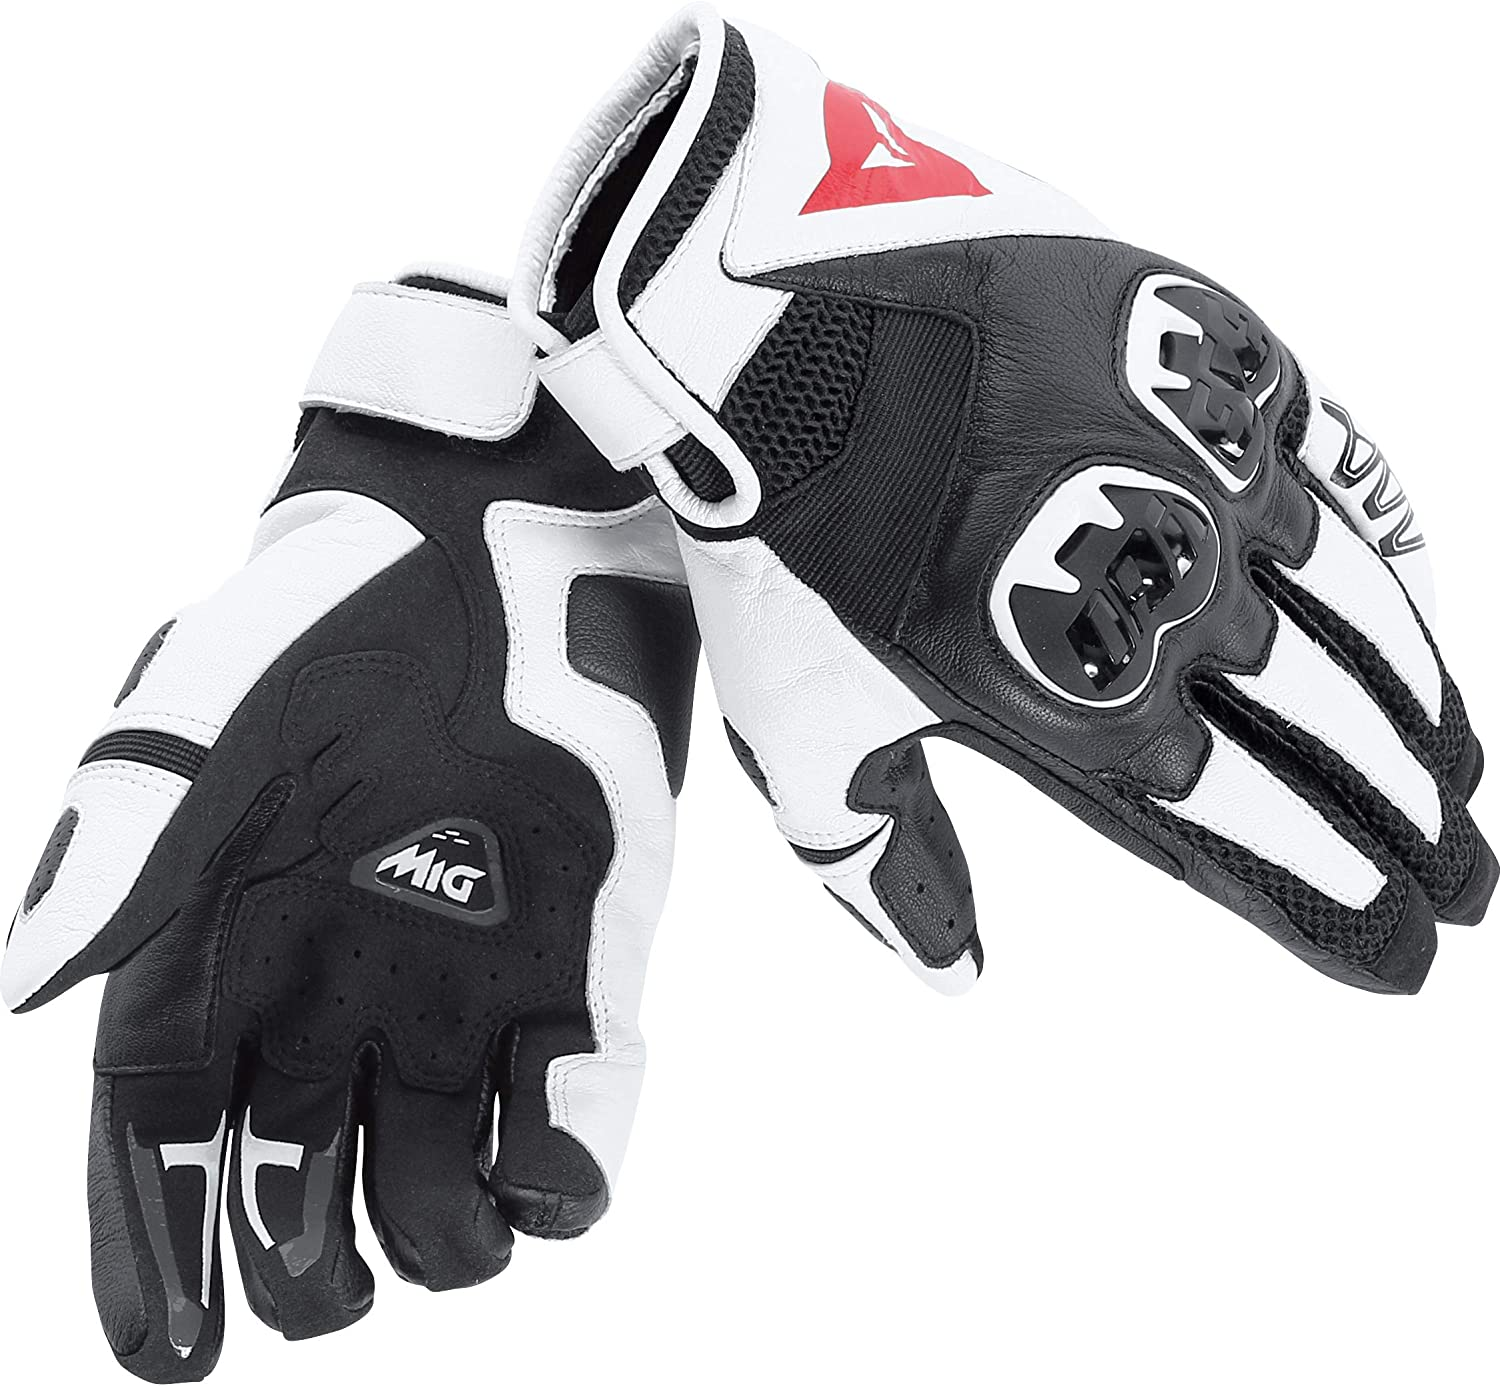 Mejores Guantes Blancos Dainese